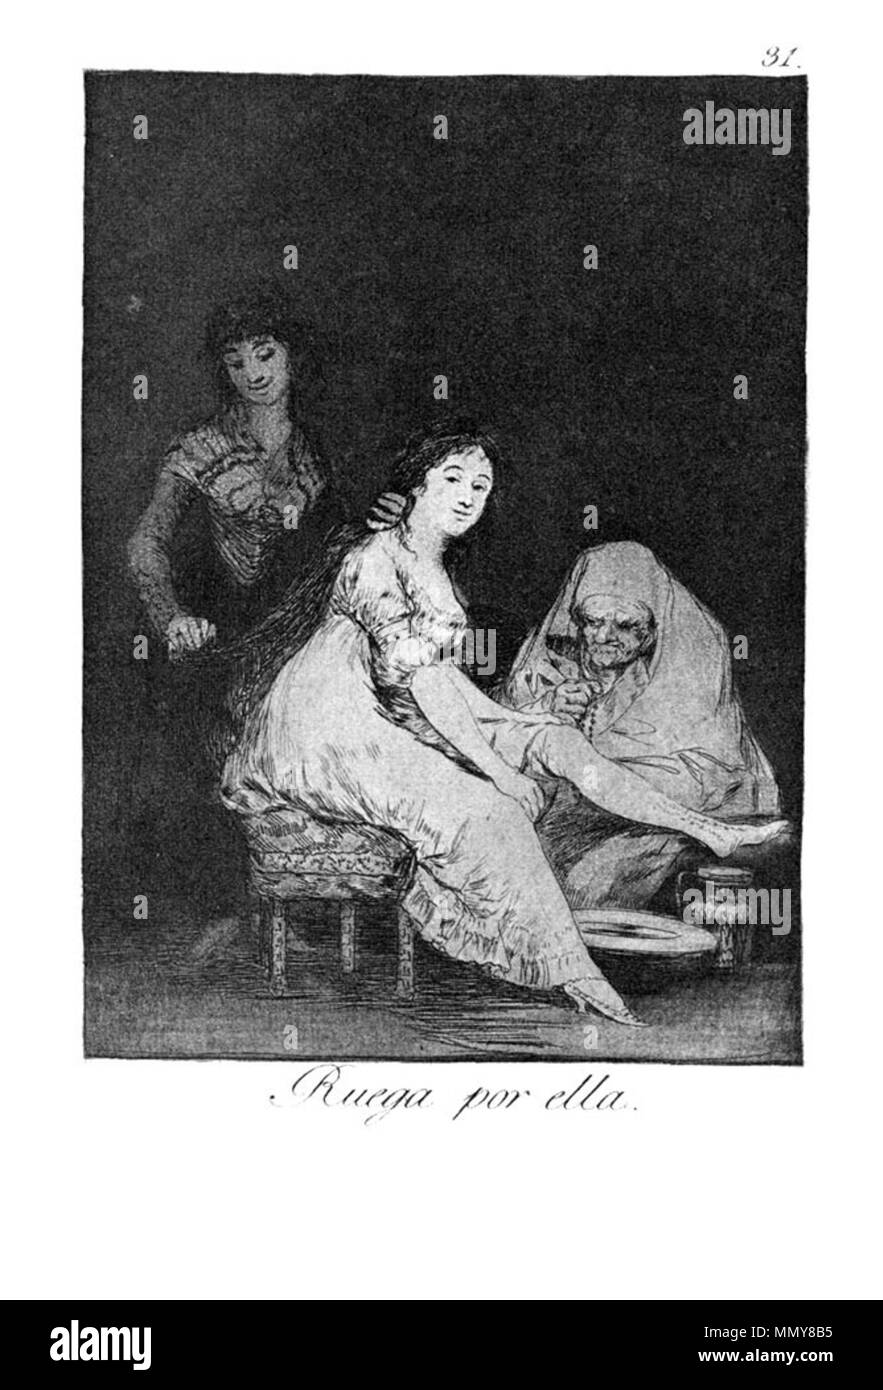 . Los Caprichos is a set of 80 aquatint prints created by Francisco Goya for release in 1799.  . 1799.   Francisco Goya (1746–1828)   Alternative names Francisco Goya Lucientes, Francisco de Goya y Lucientes, Francisco José Goya Lucientes  Description Spanish painter, printmaker, lithographer, engraver and etcher  Date of birth/death 30 March 1746 16 April 1828  Location of birth/death Fuendetodos Bordeaux  Work location Madrid, Zaragoza, Bordeaux  Authority control  : Q5432 VIAF:?54343141 ISNI:?0000 0001 2280 1608 ULAN:?500118936 LCCN:?n79003363 NLA:?36545788 WorldCat Goya - Caprichos (31 - Stock Image